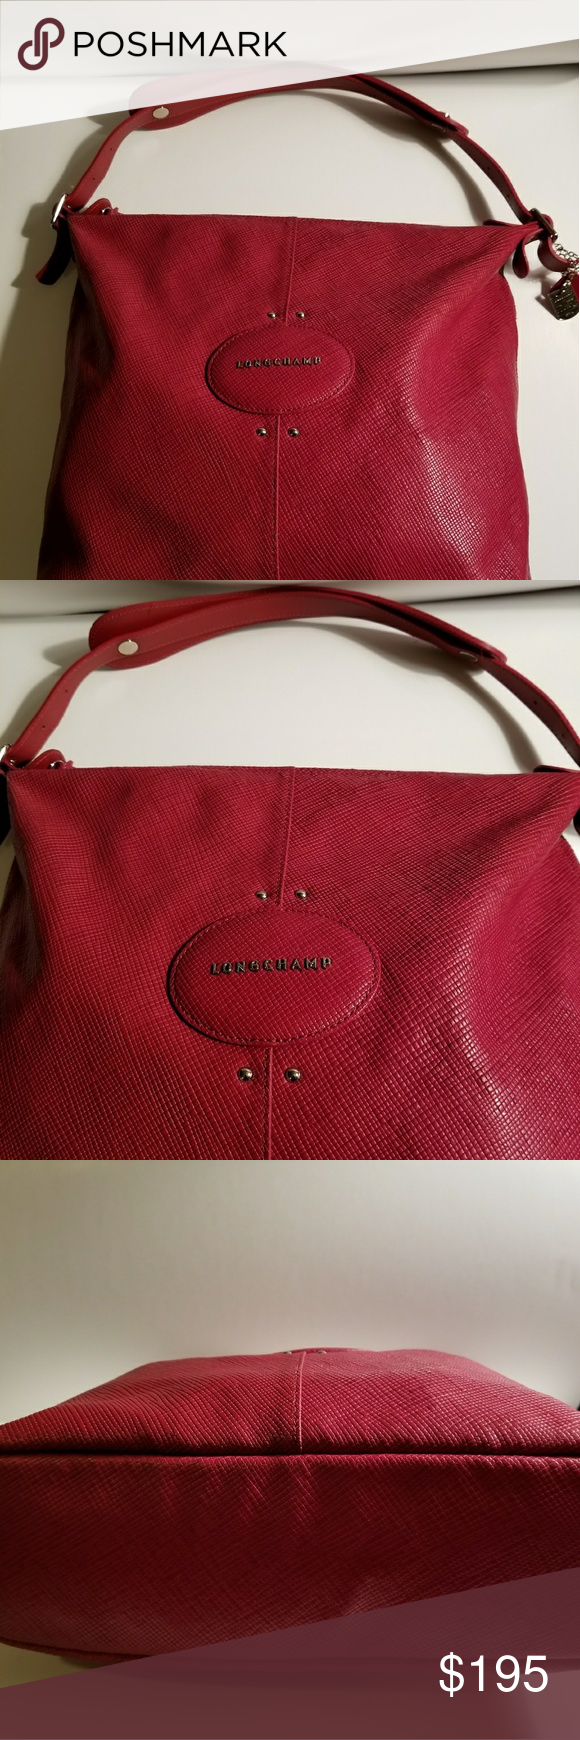 Closet Clear Out Sale Longchamp Quadri Hobo Leather Cleaning Quadry Bag True Red Lovely In Signature Cross Hatched Clean Great Condition